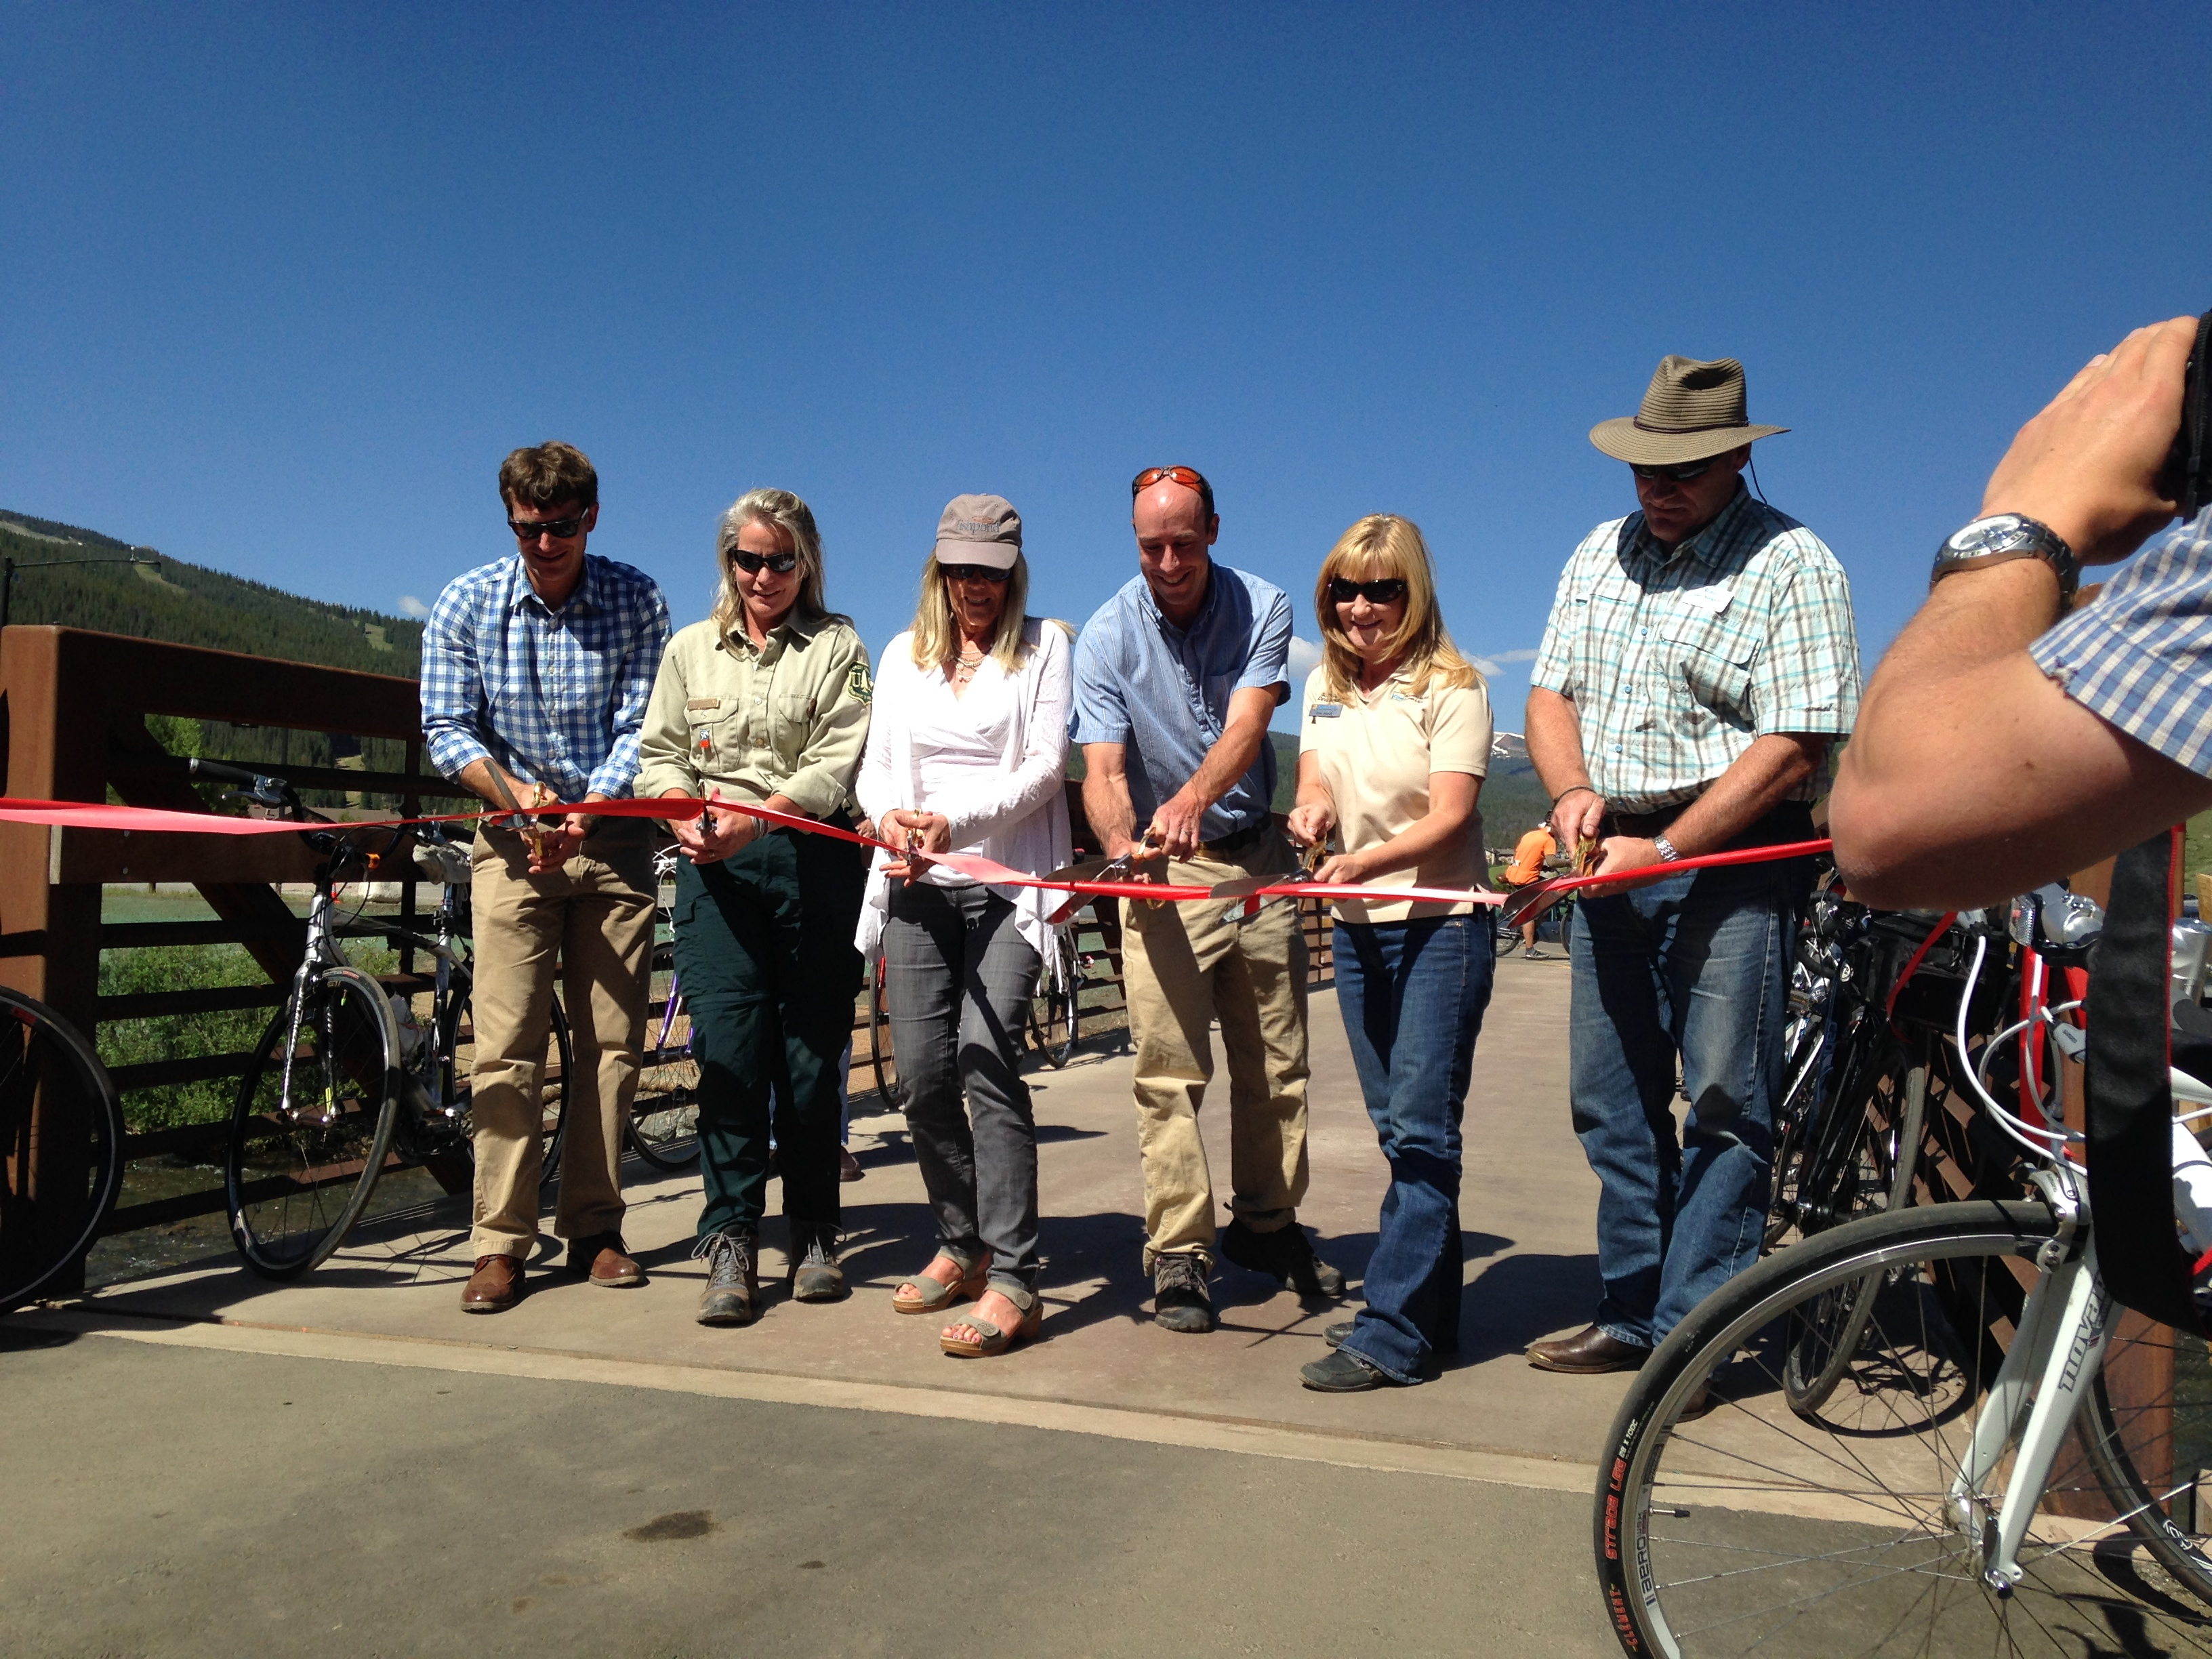 Six officials from various agencies cut a ribbon stretched across a pathway bridge.